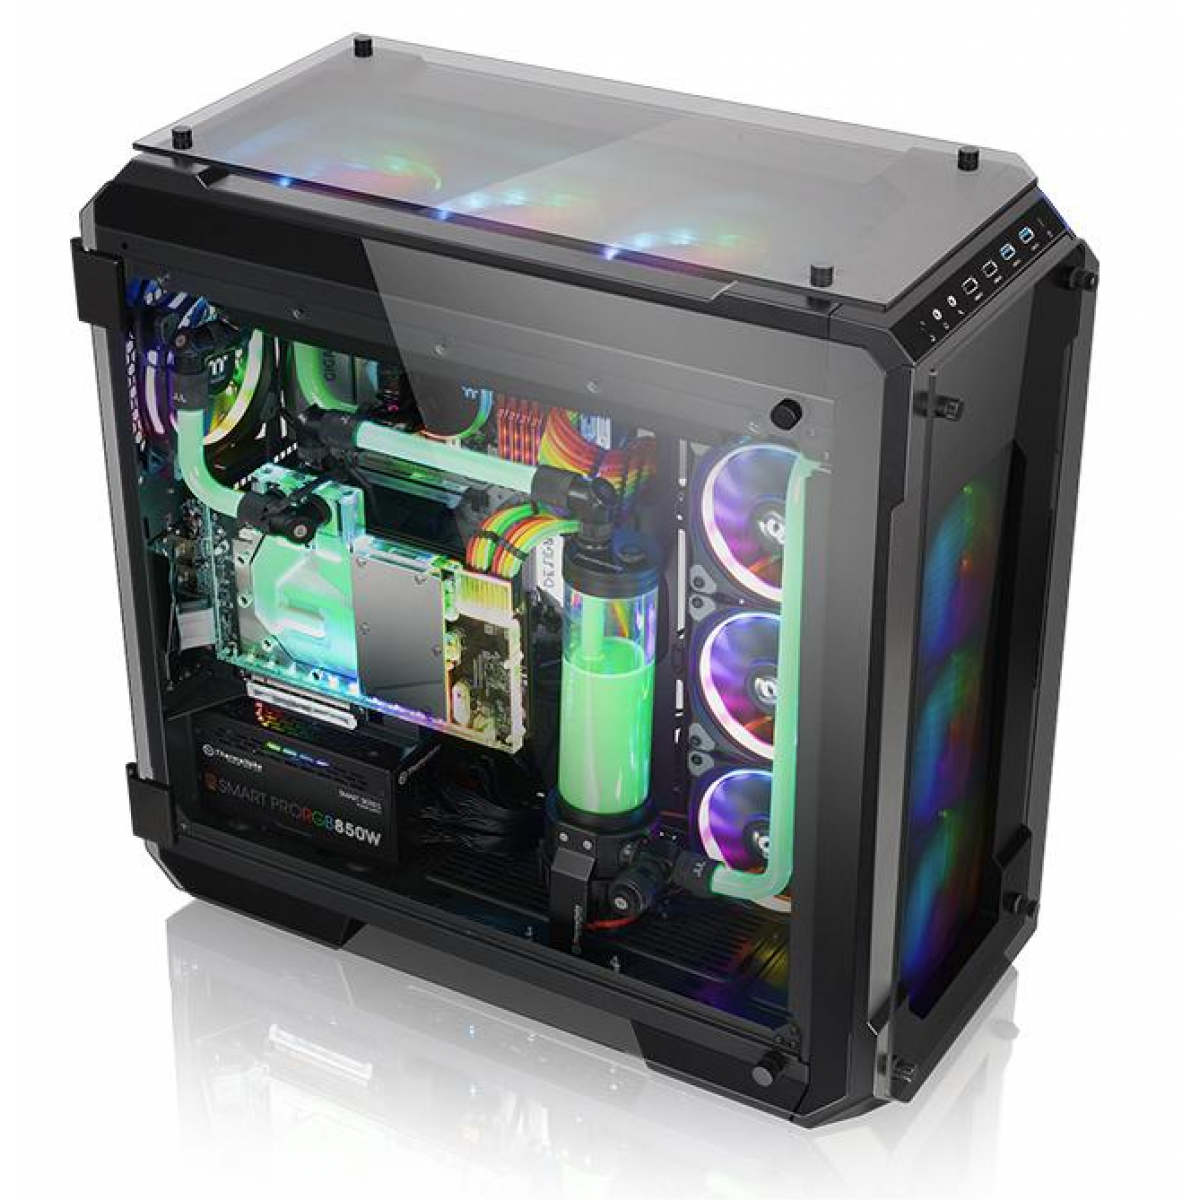 Gabinete Gamer Thermaltake View 71 RGB, Full Tower, Com 3 Fans, Vidro Temperado, Black, S-Fonte, CA-1I7-00F1WN-01